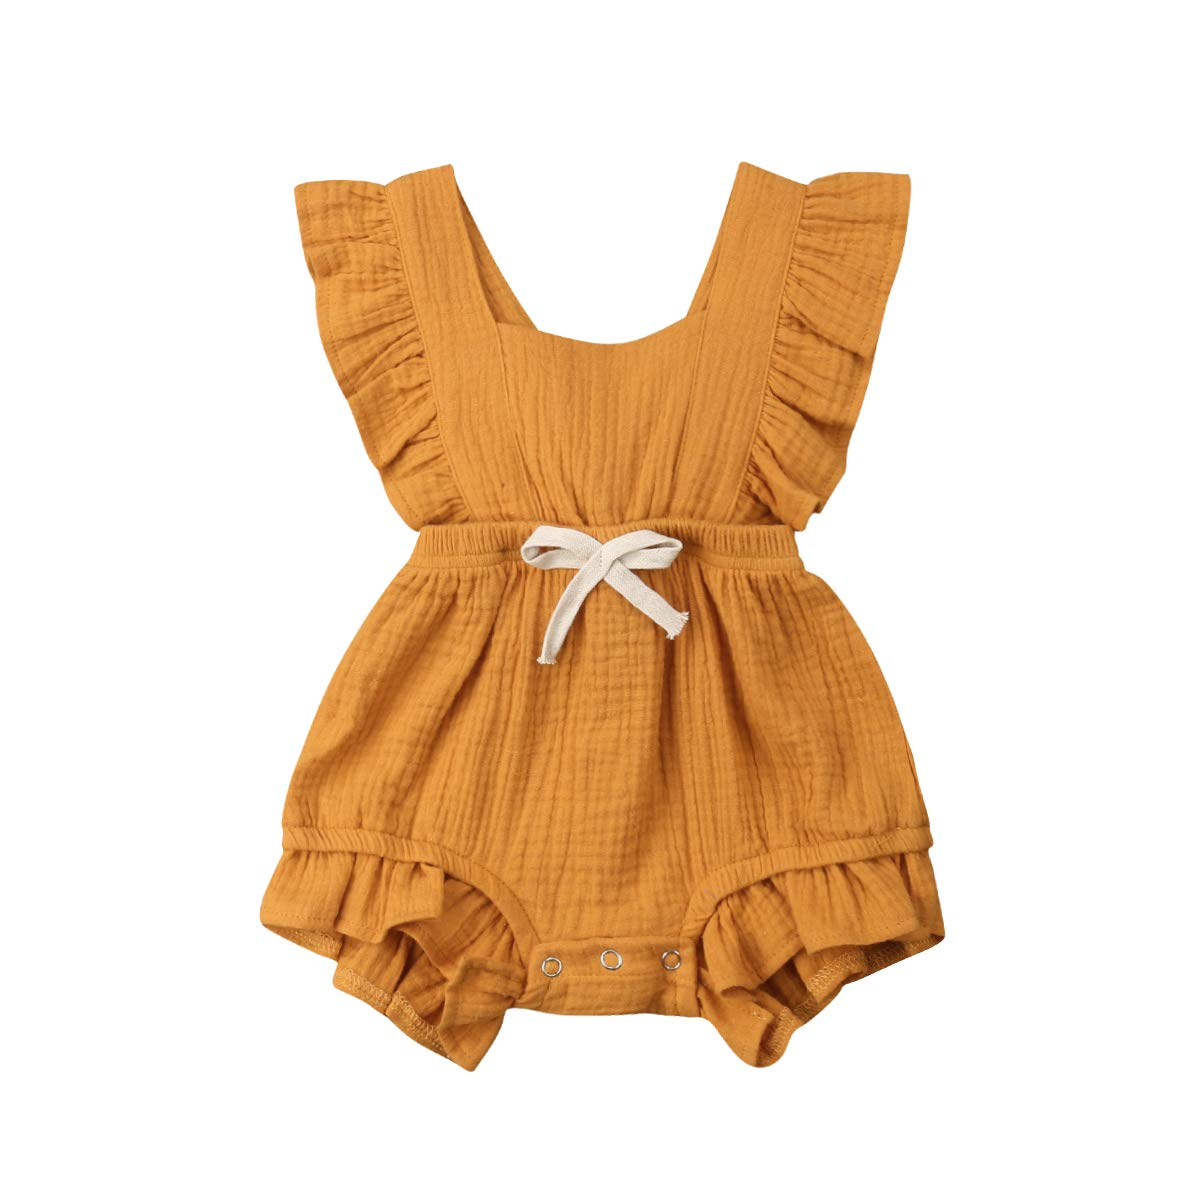 ITFABS Newborn Baby Girl Romper Bodysuits Cotton Flutter Sleeve One-Piece Romper Outfits Clothes (Orange 2, 18-24 Months)